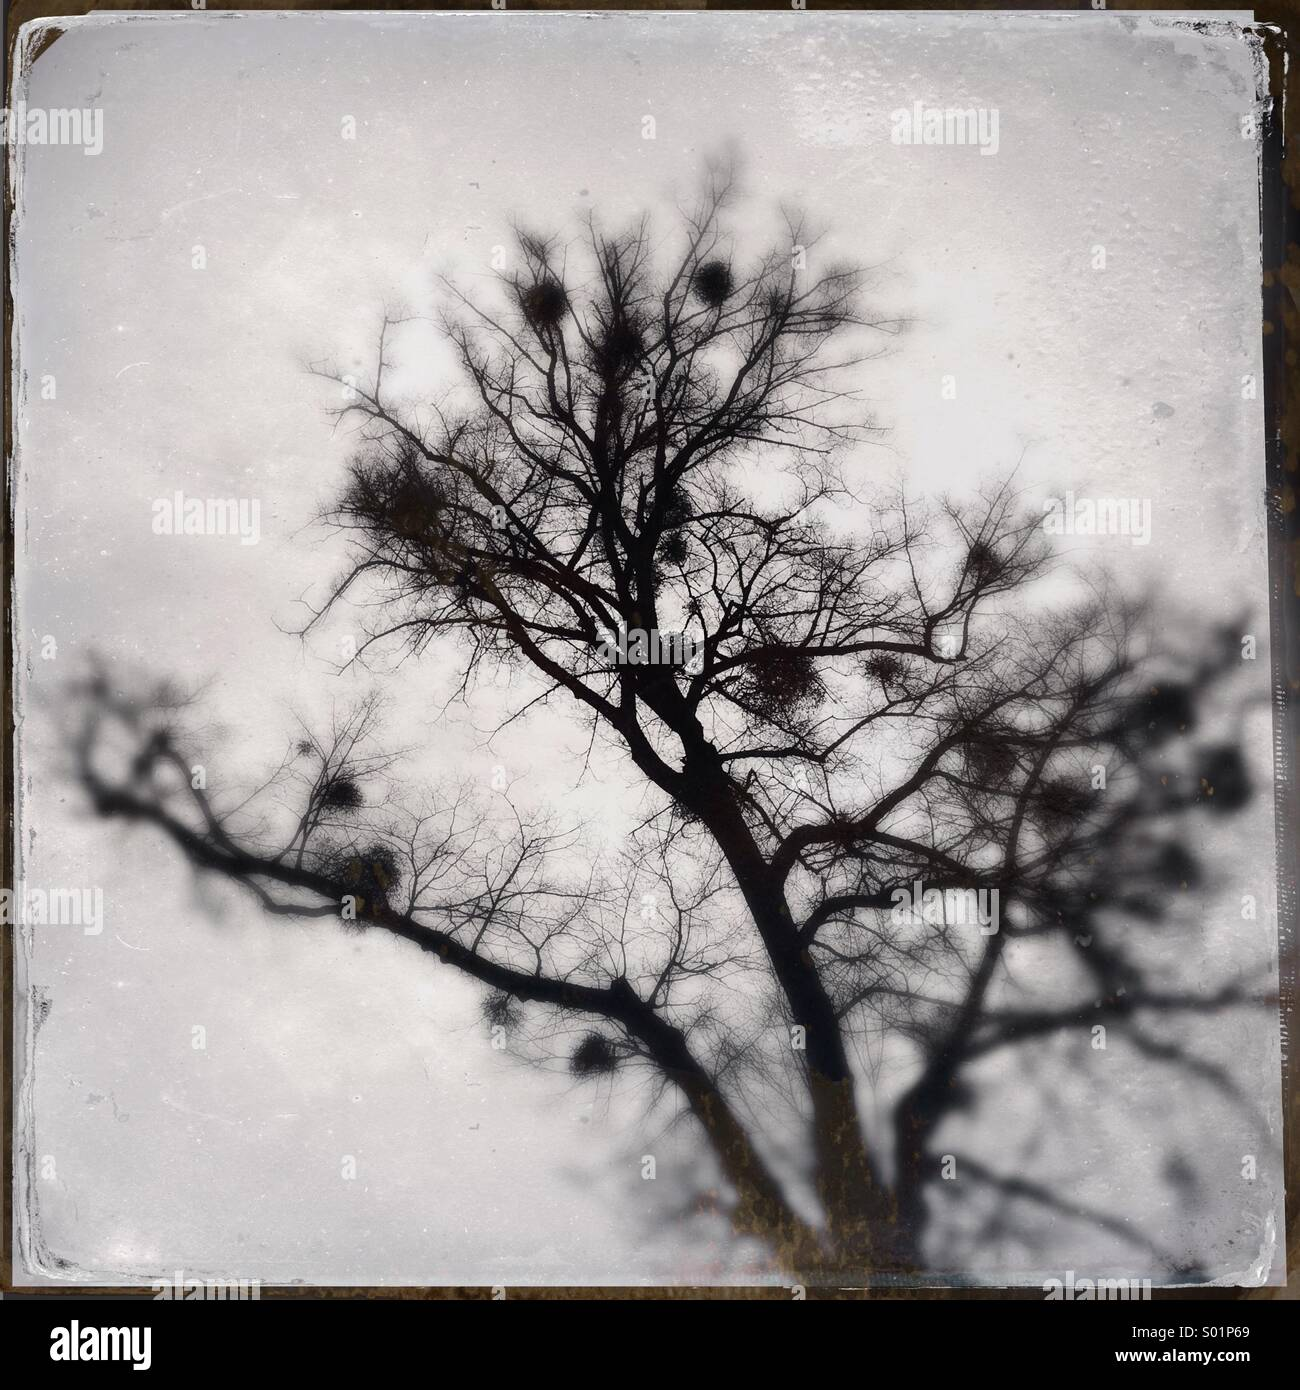 Tree black and white with mistletoes - wetplate texture effect - Stock Image